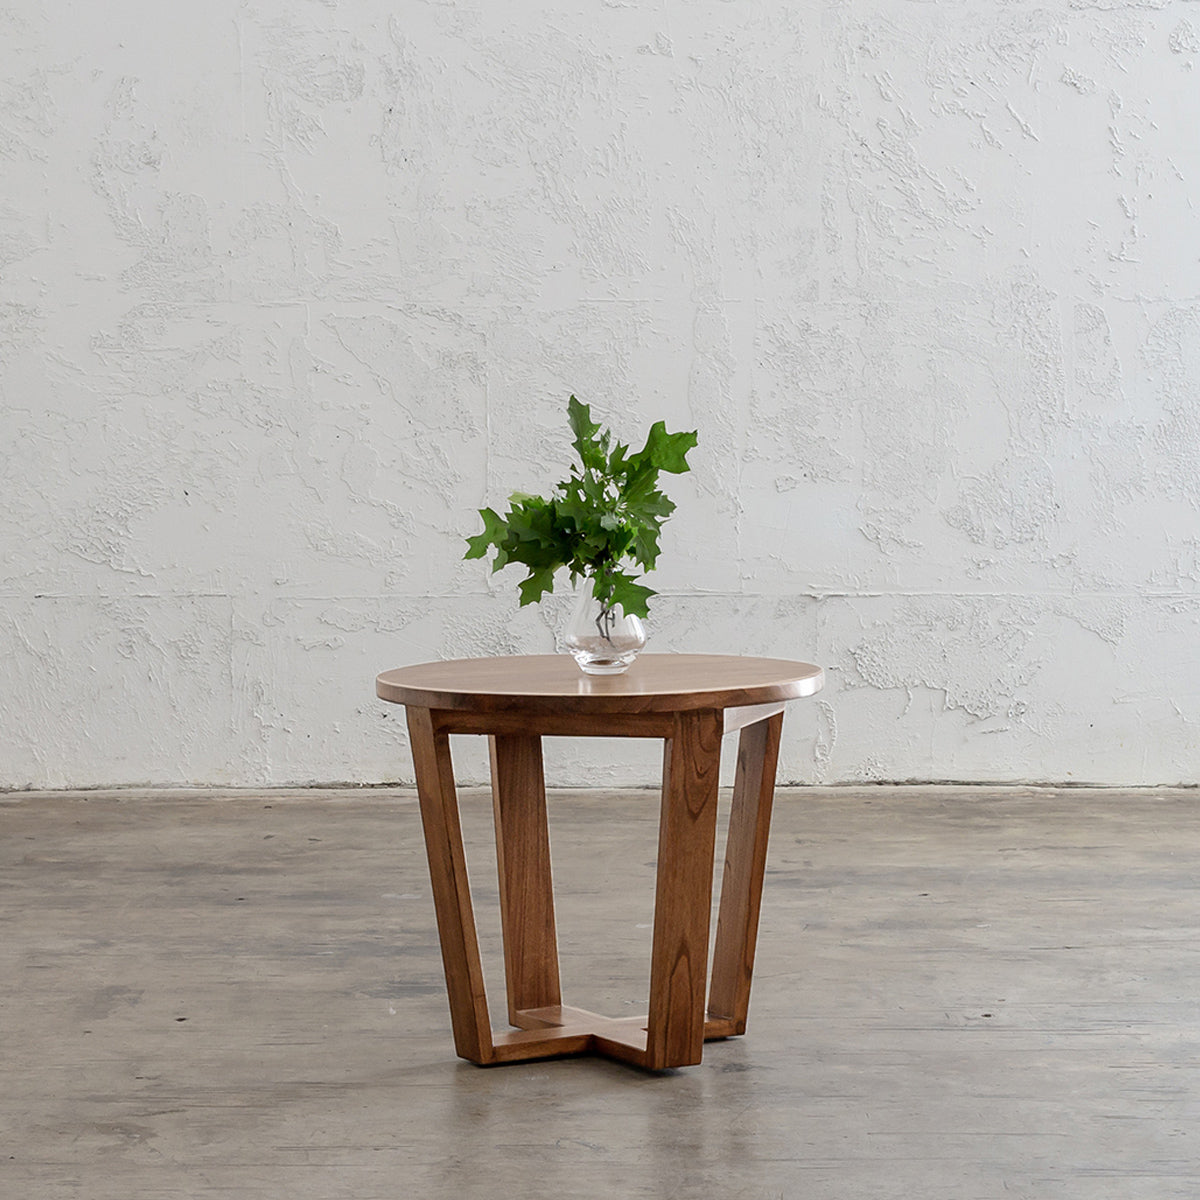 Amara Mid Century Timber Terrace Side Table Solid Top Wooden Side Table Living By Design